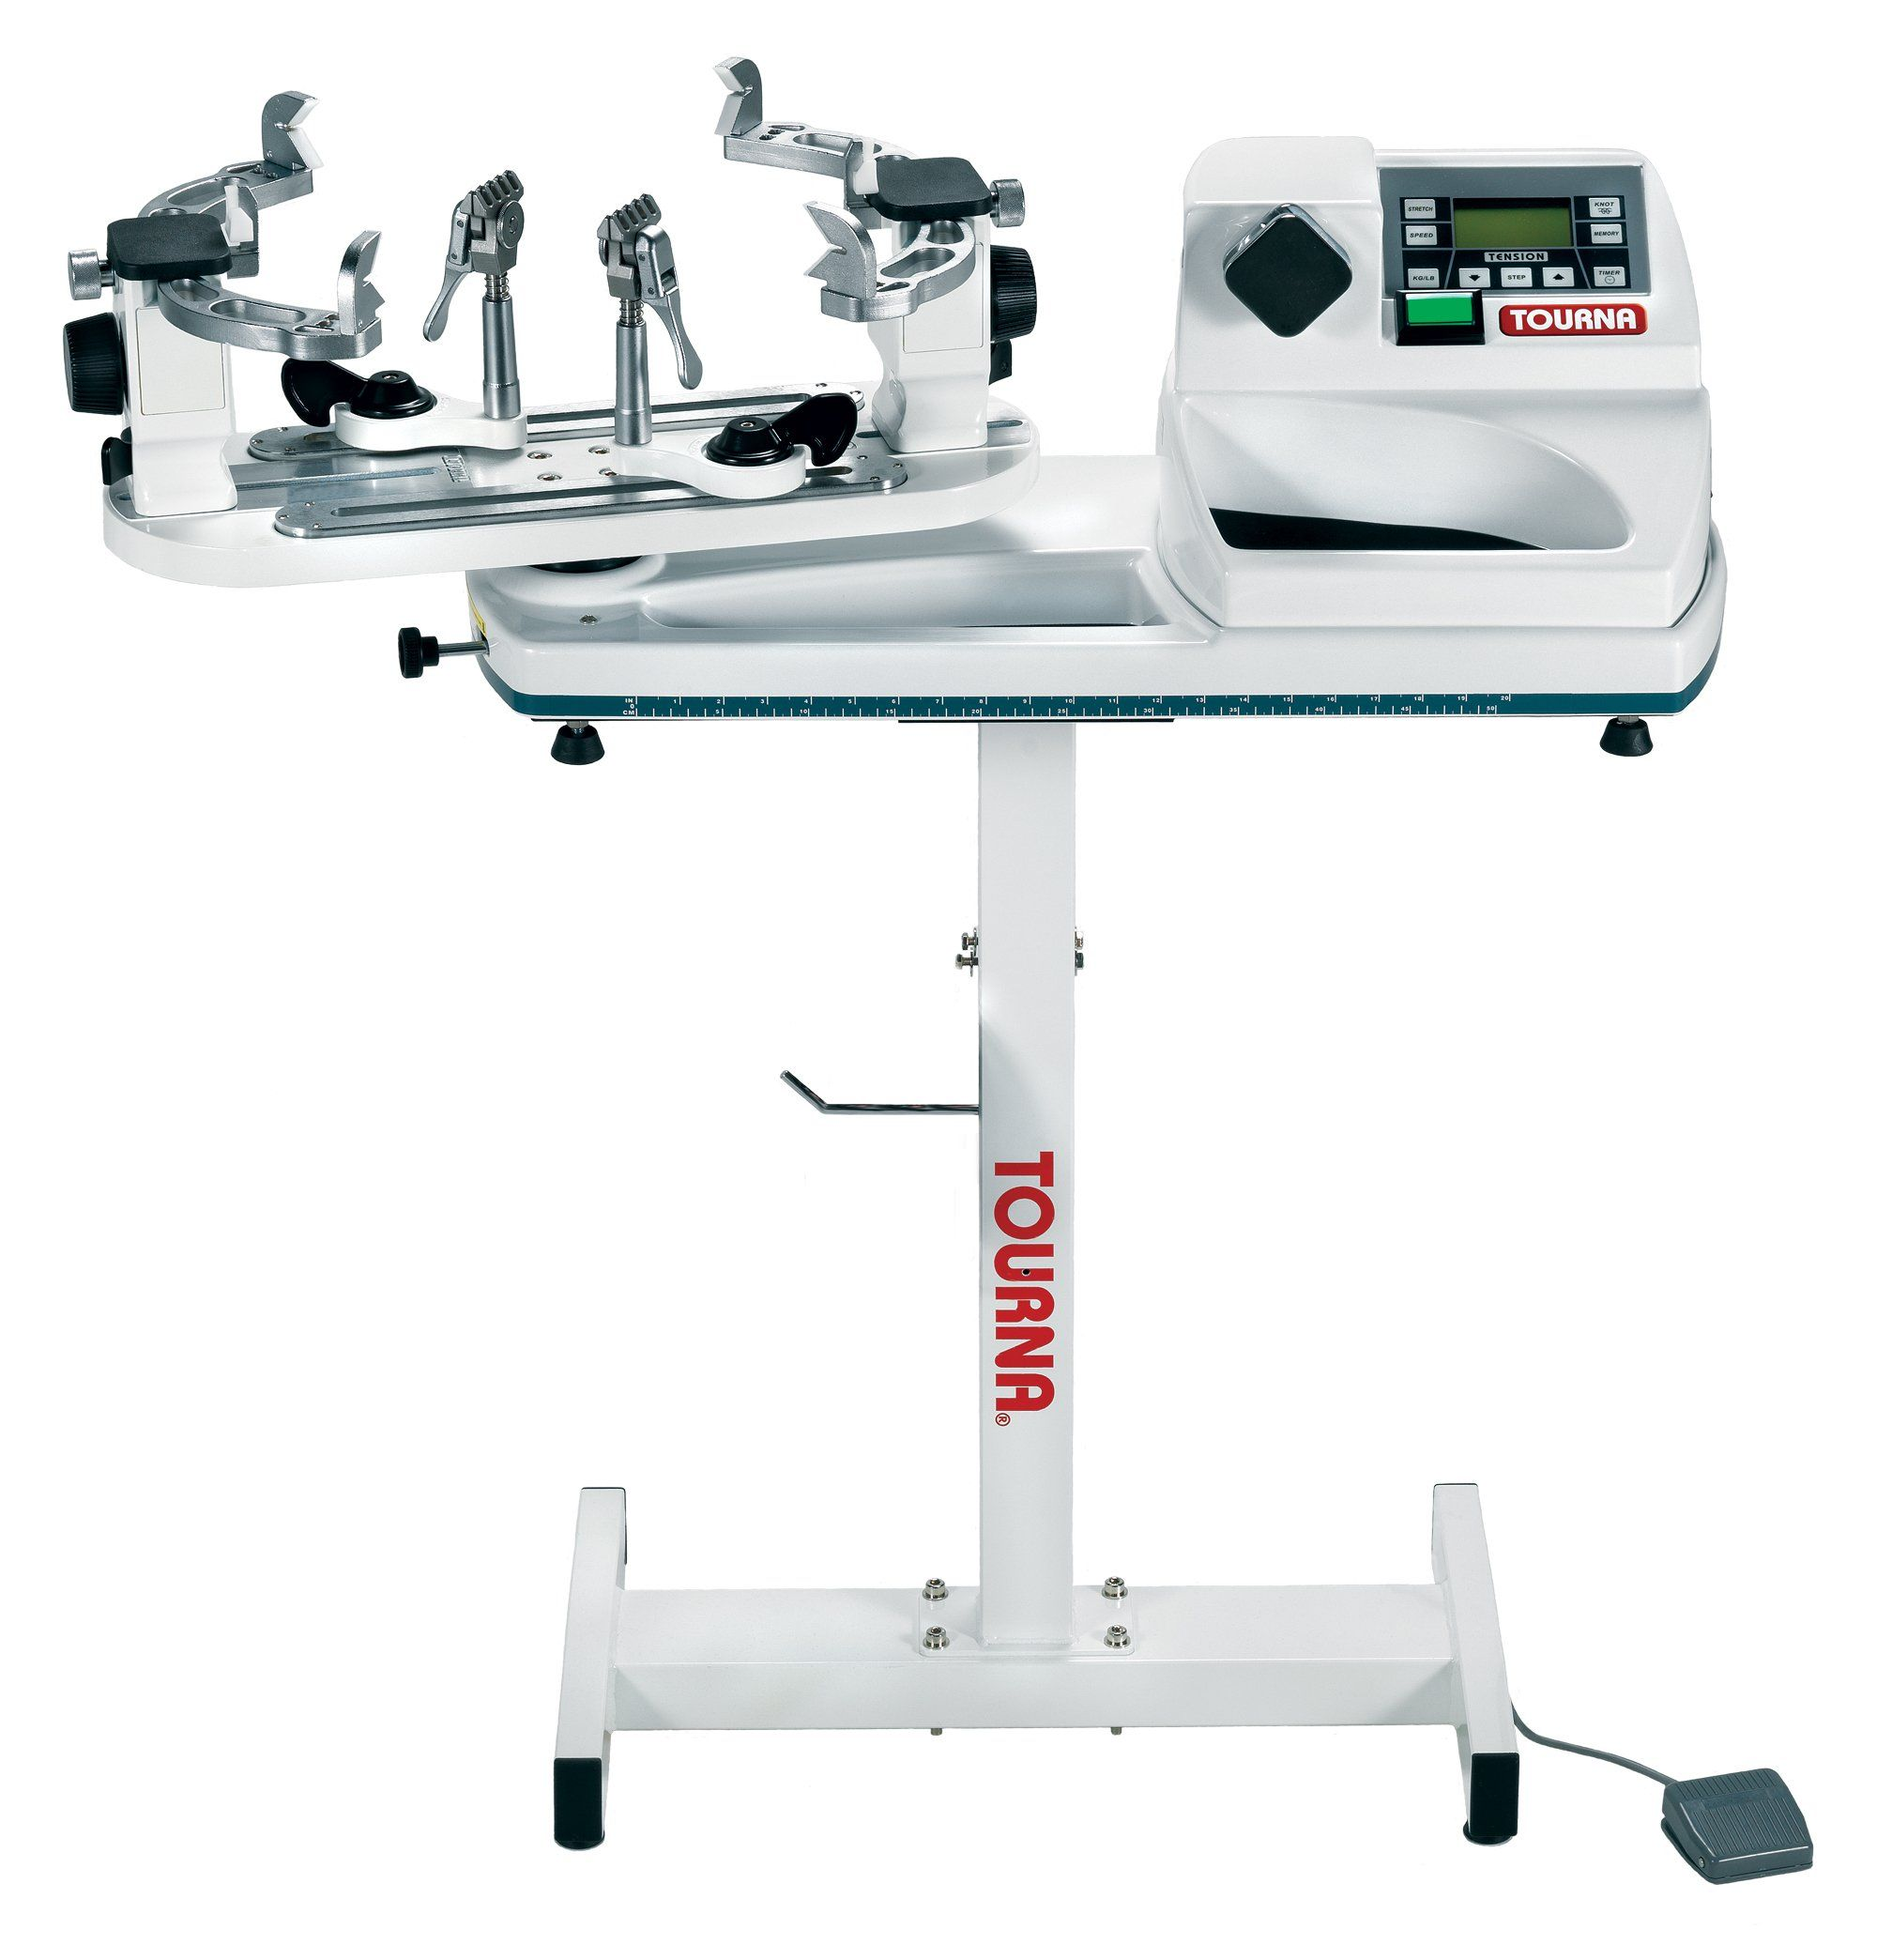 Tourna 600es Constant Pull Stringing Machine Details Can Be Found By Clicking On The Image This Is An Affiliate Link Has Tennis Stringing Machine Diy Storage Tennis Racket